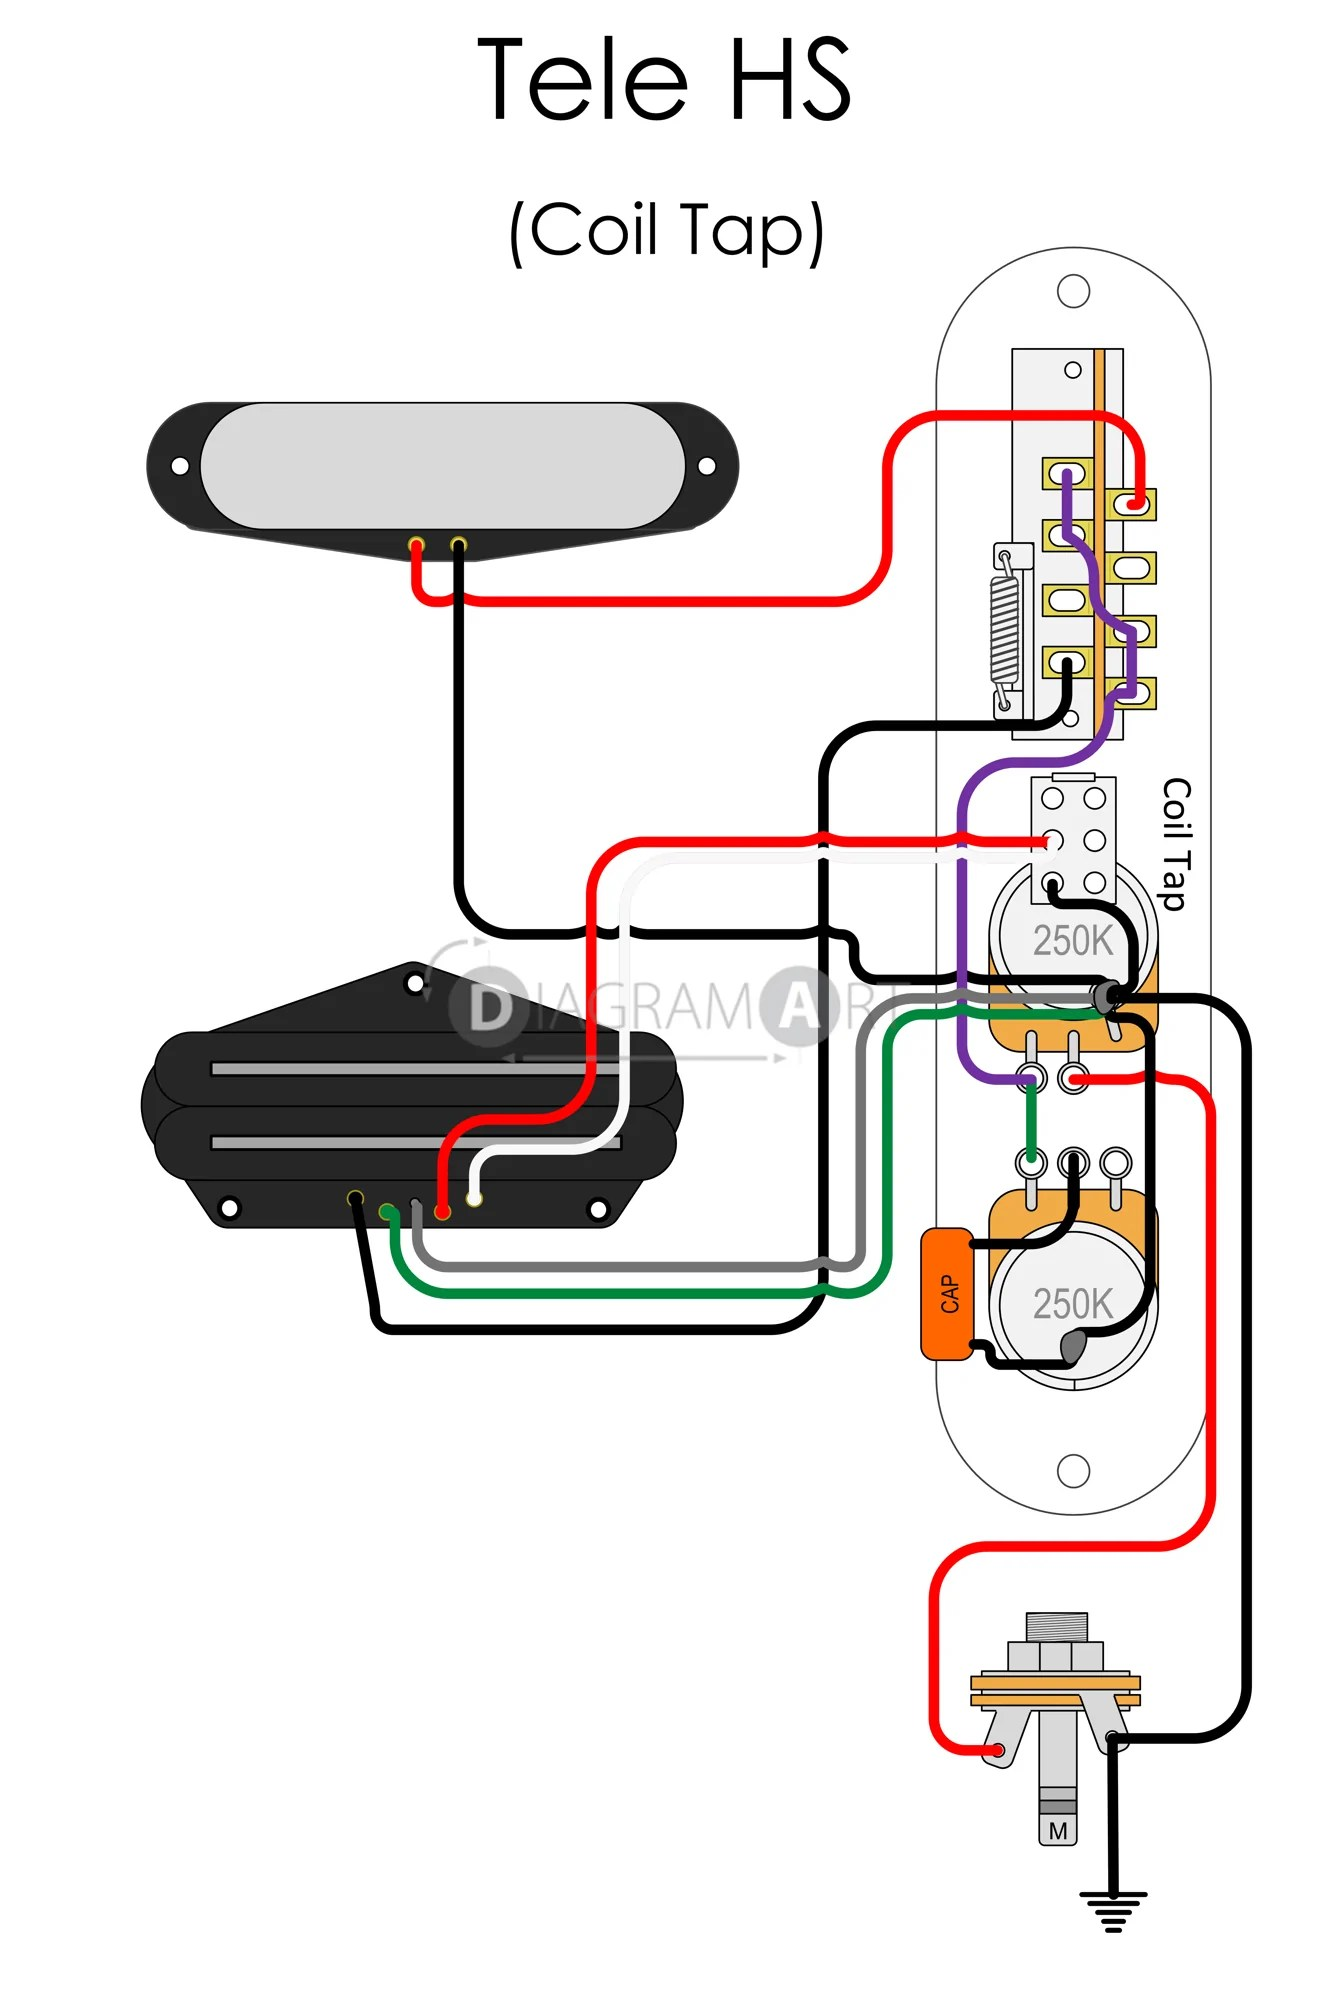 hight resolution of electric guitar wiring tele hs coil tap electric circuit coil tap wiring diagram seymour duncan coil tap wiring